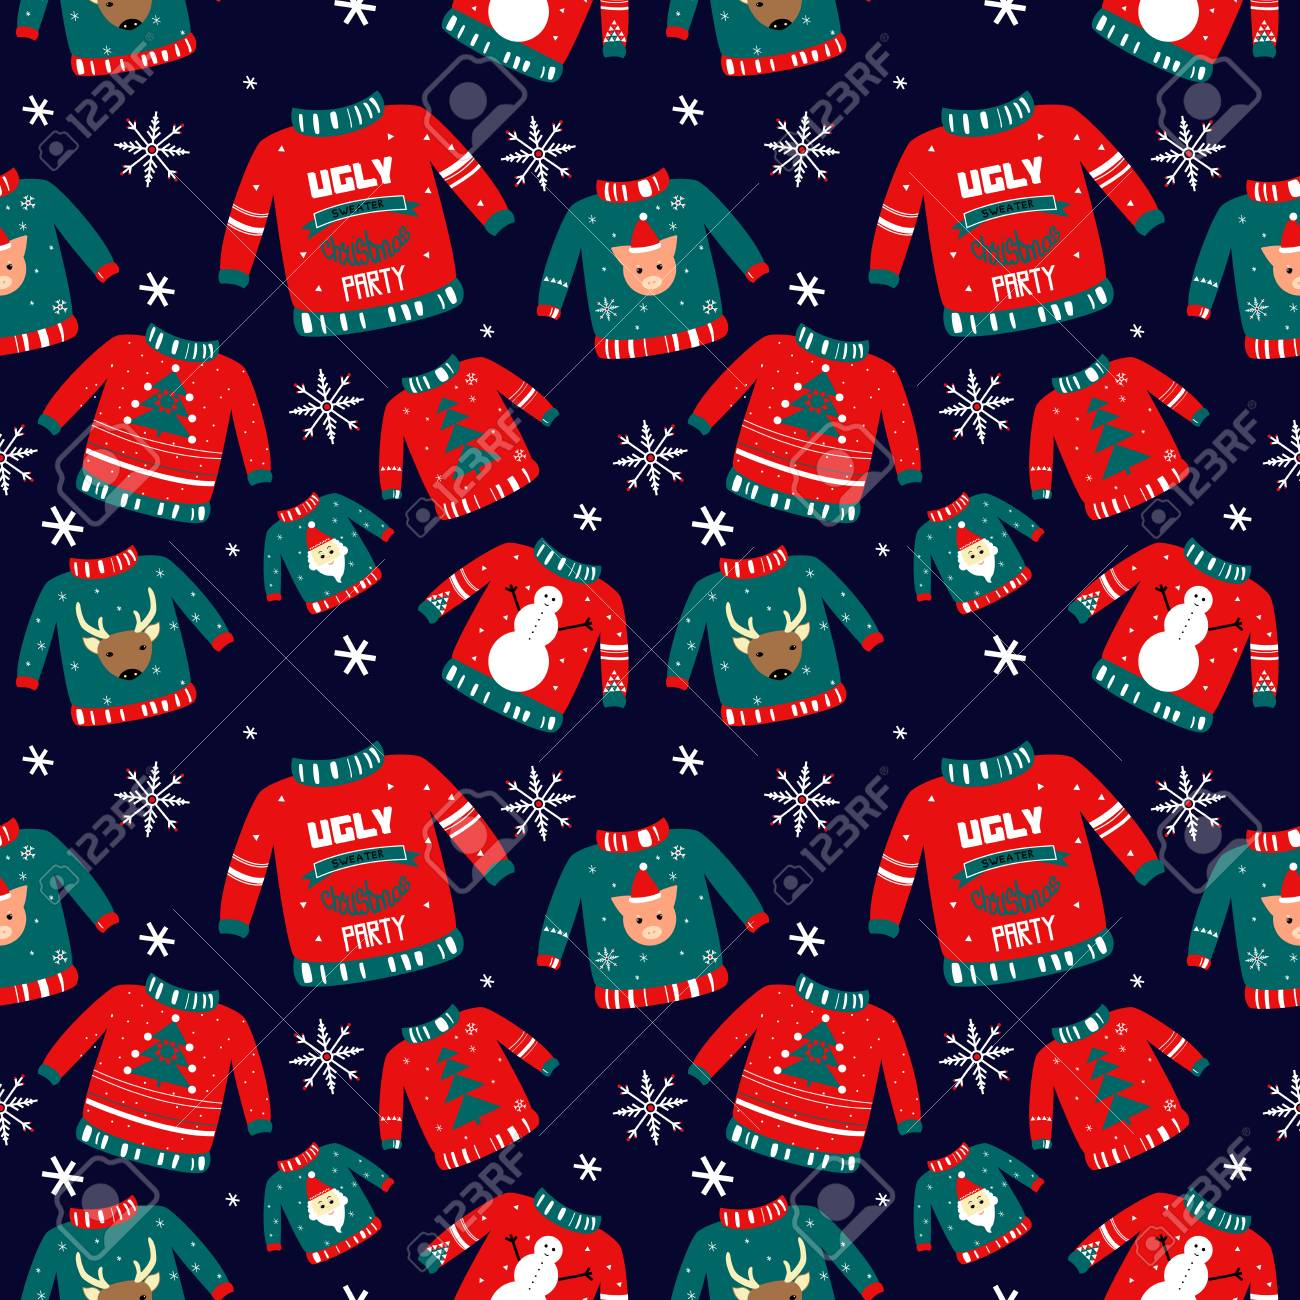 Vector Pattern For Holiday Events As Ugly Christmas Sweater Party Hand Royalty Free Cliparts Vectors And Stock Illustration Image 110644120